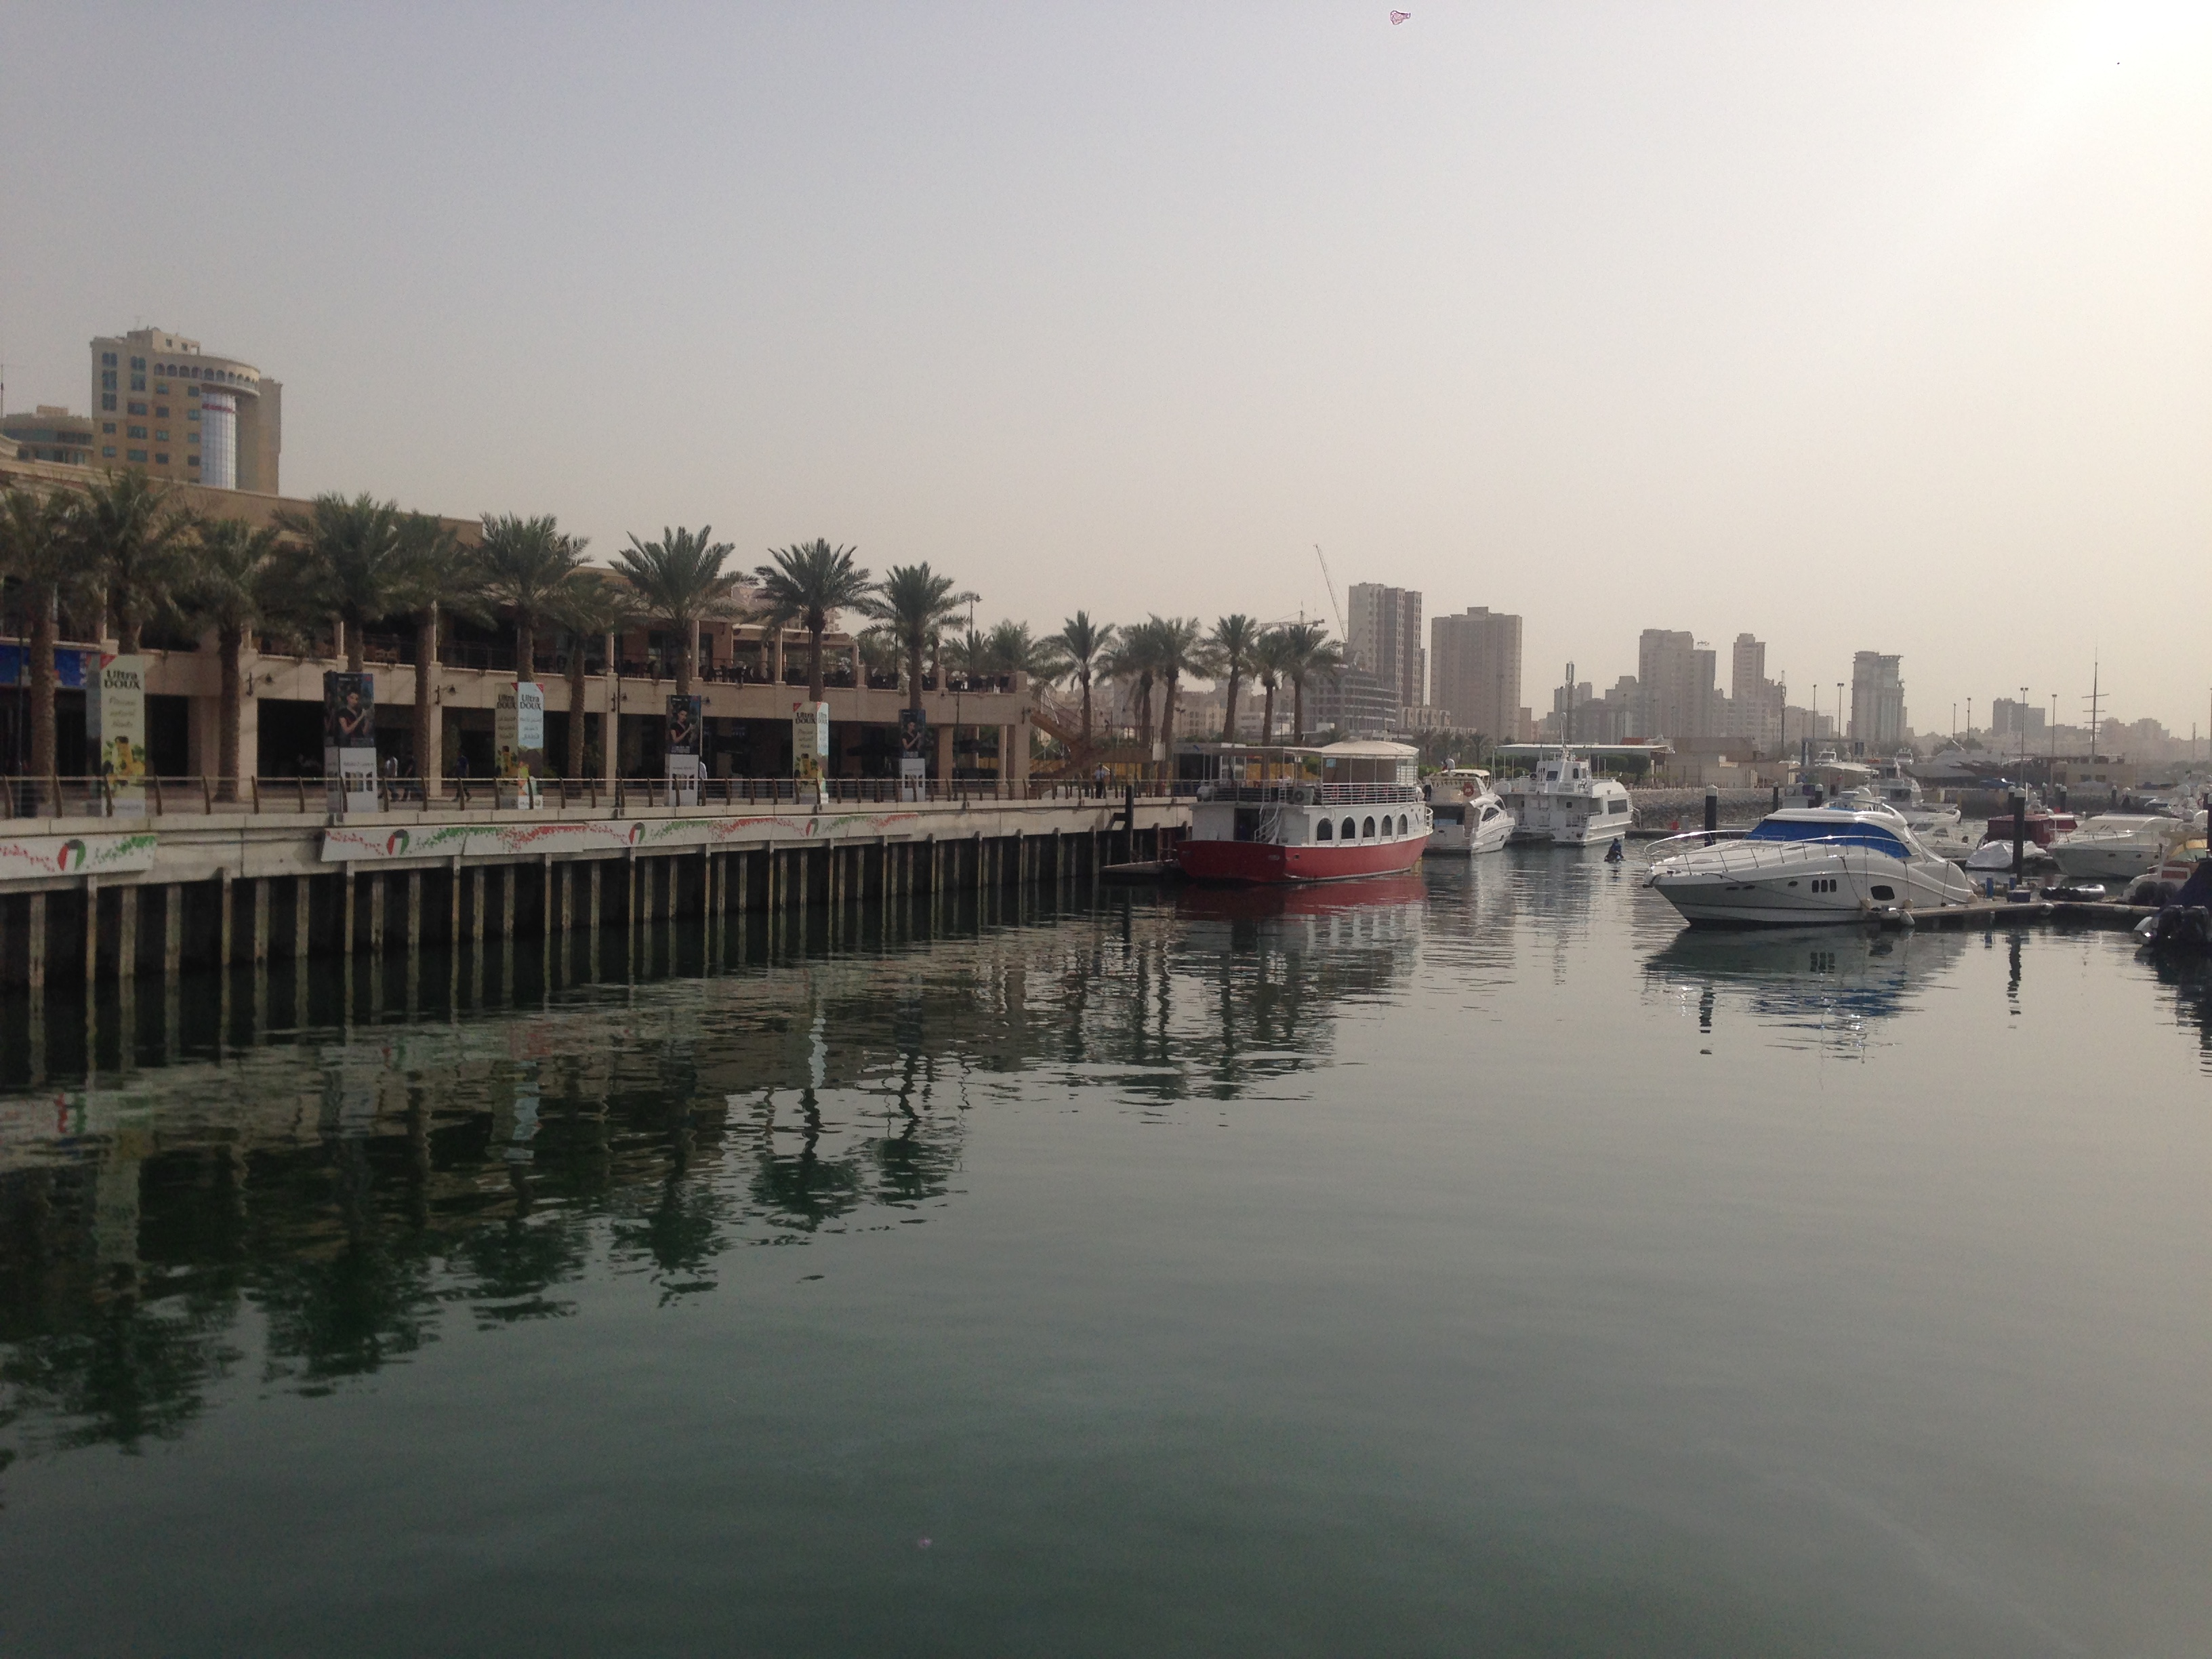 Visiting Kuwait for Family and Work